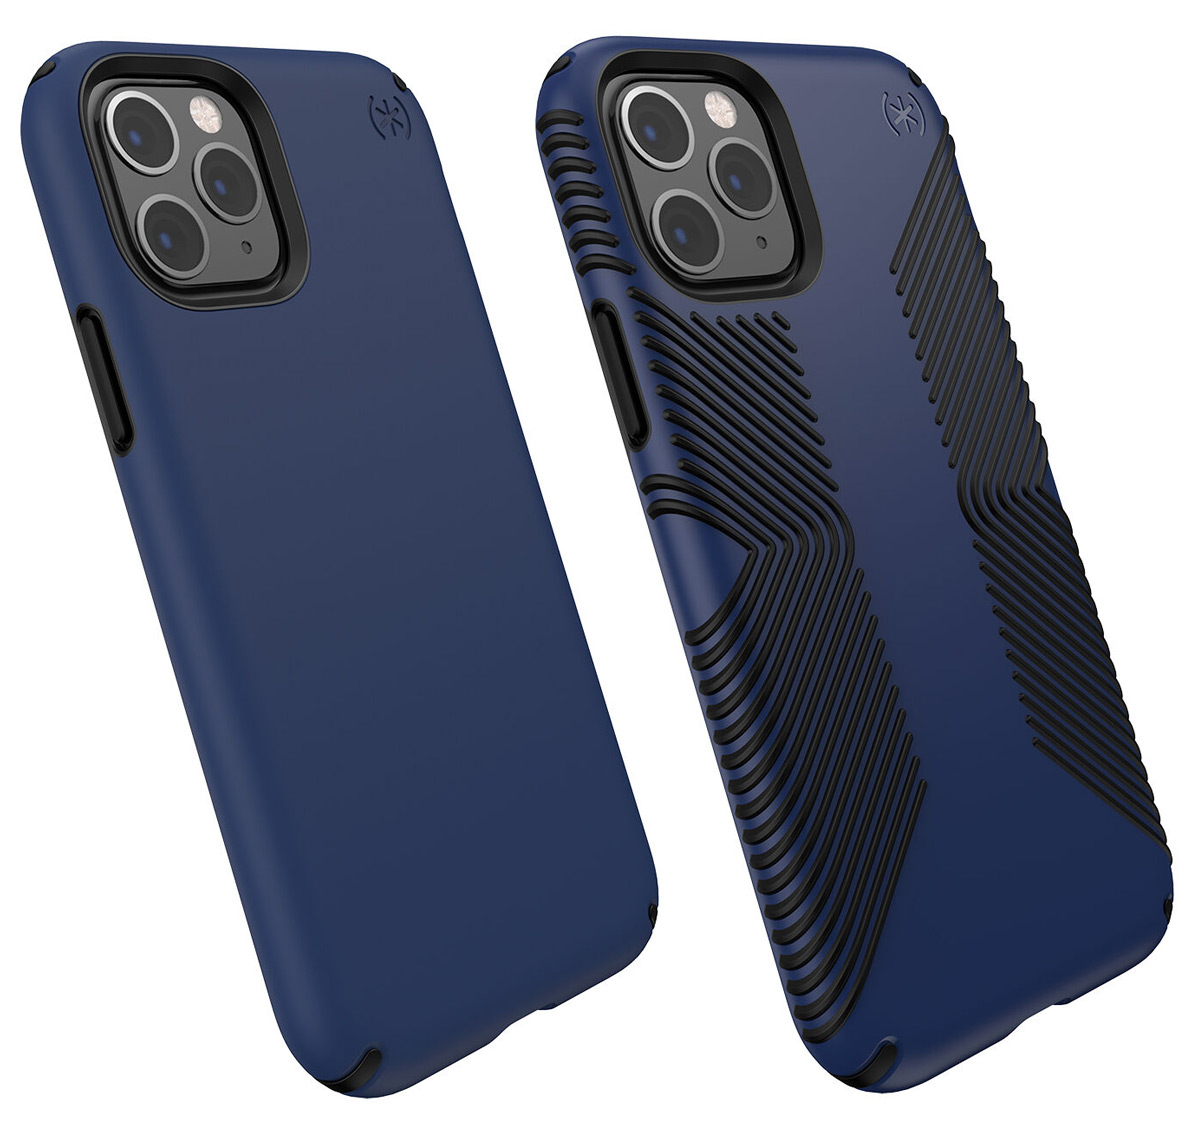 Speck Presidio Pro and Presidio Grip Phone Cases